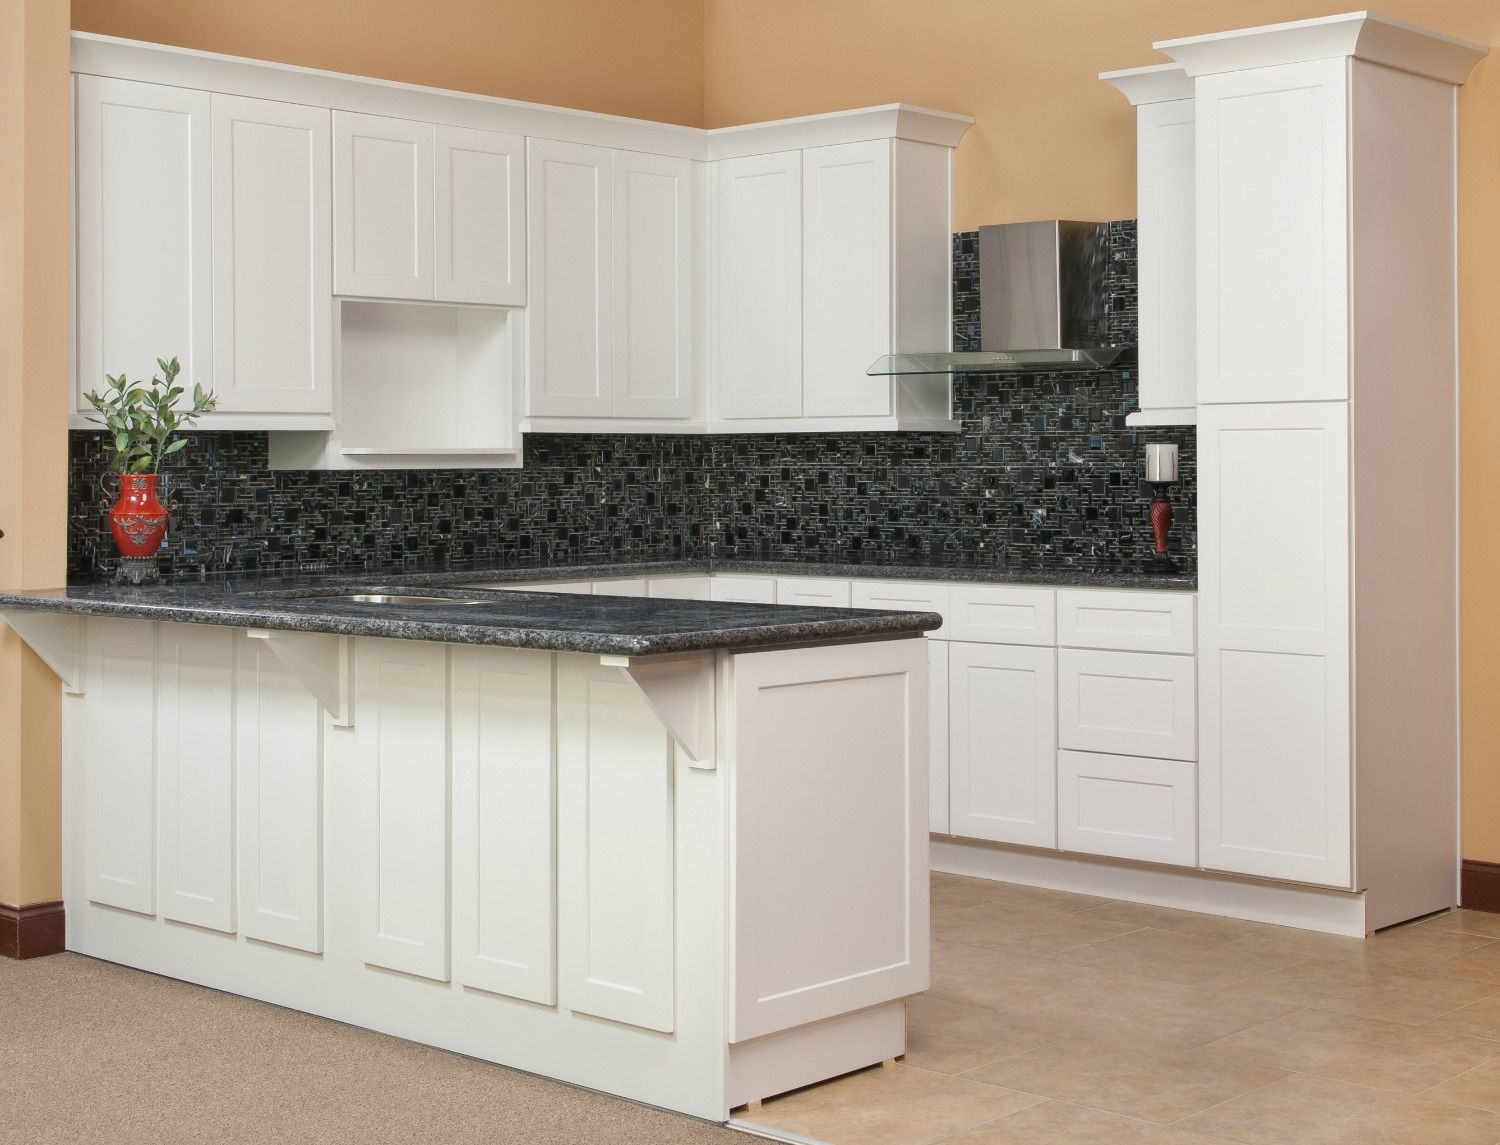 Kitchen of the day brilliant white shaker rta kitchen for Shaker kitchen cabinets wholesale